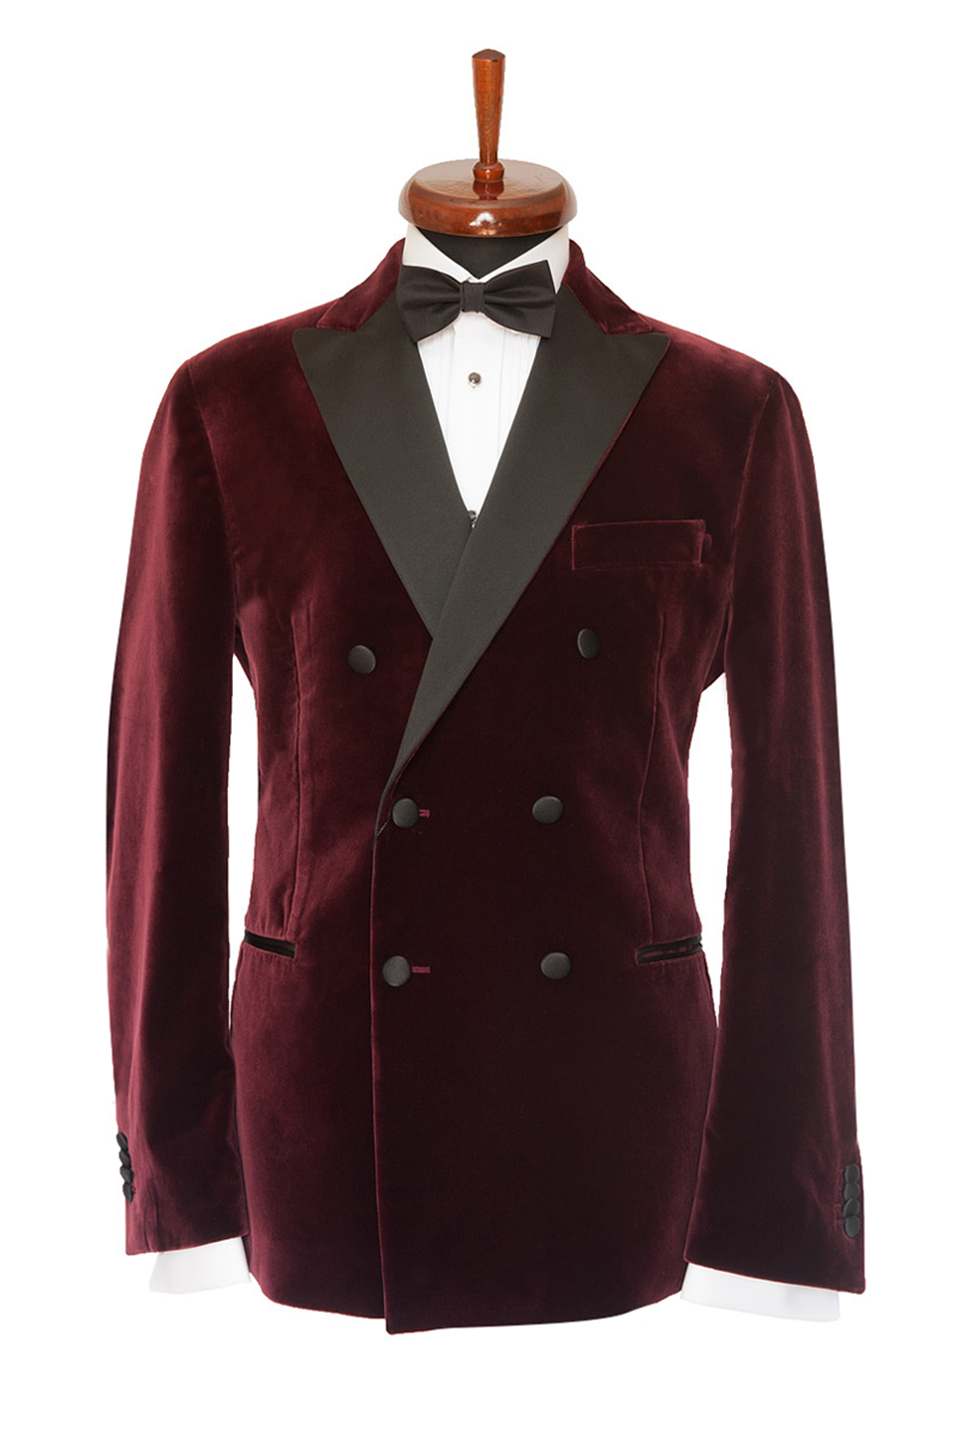 Dinner jackets are available in an assortment of styles, colors, fabrics, and designers. Modern fit, classic fit and slim fit are all available for same day shipping. To learn more on how to buy our dinner jackets, visit our site today!